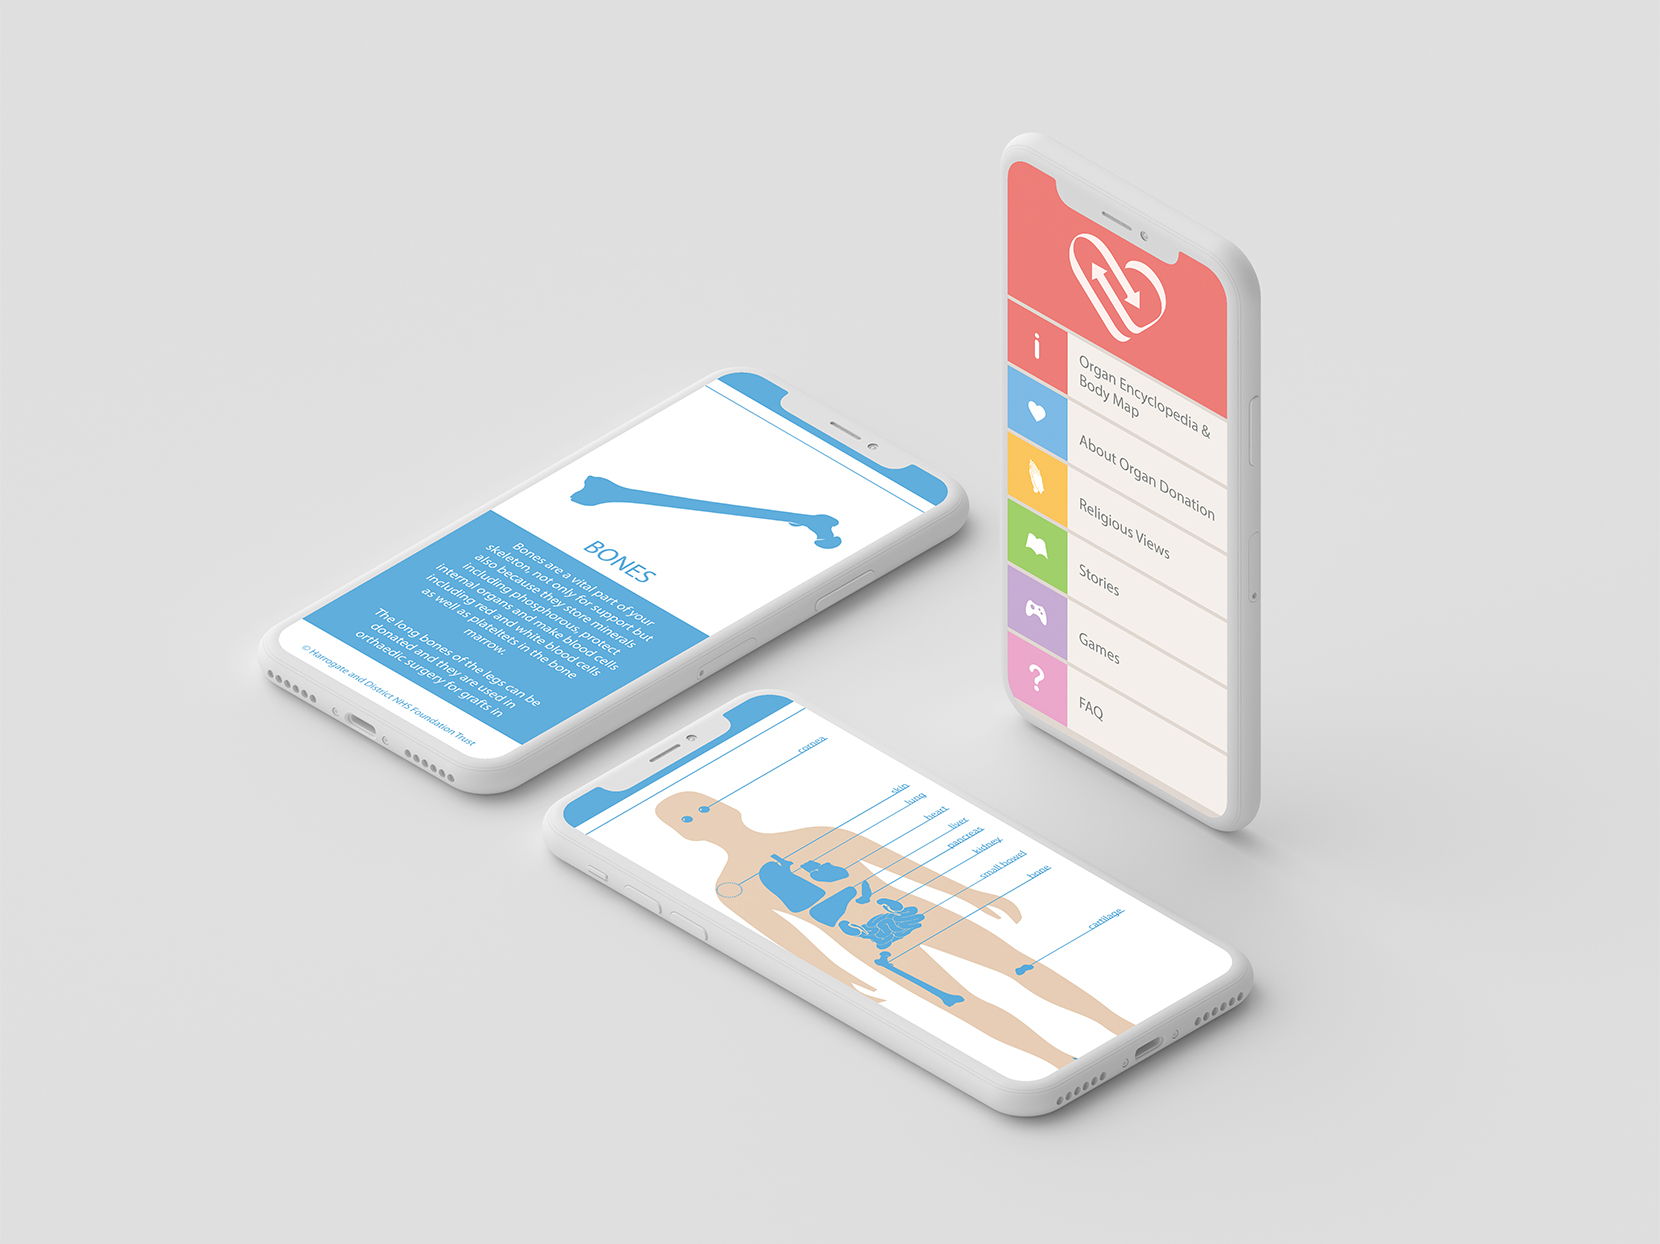 iPhone App design for Harrogate NHS